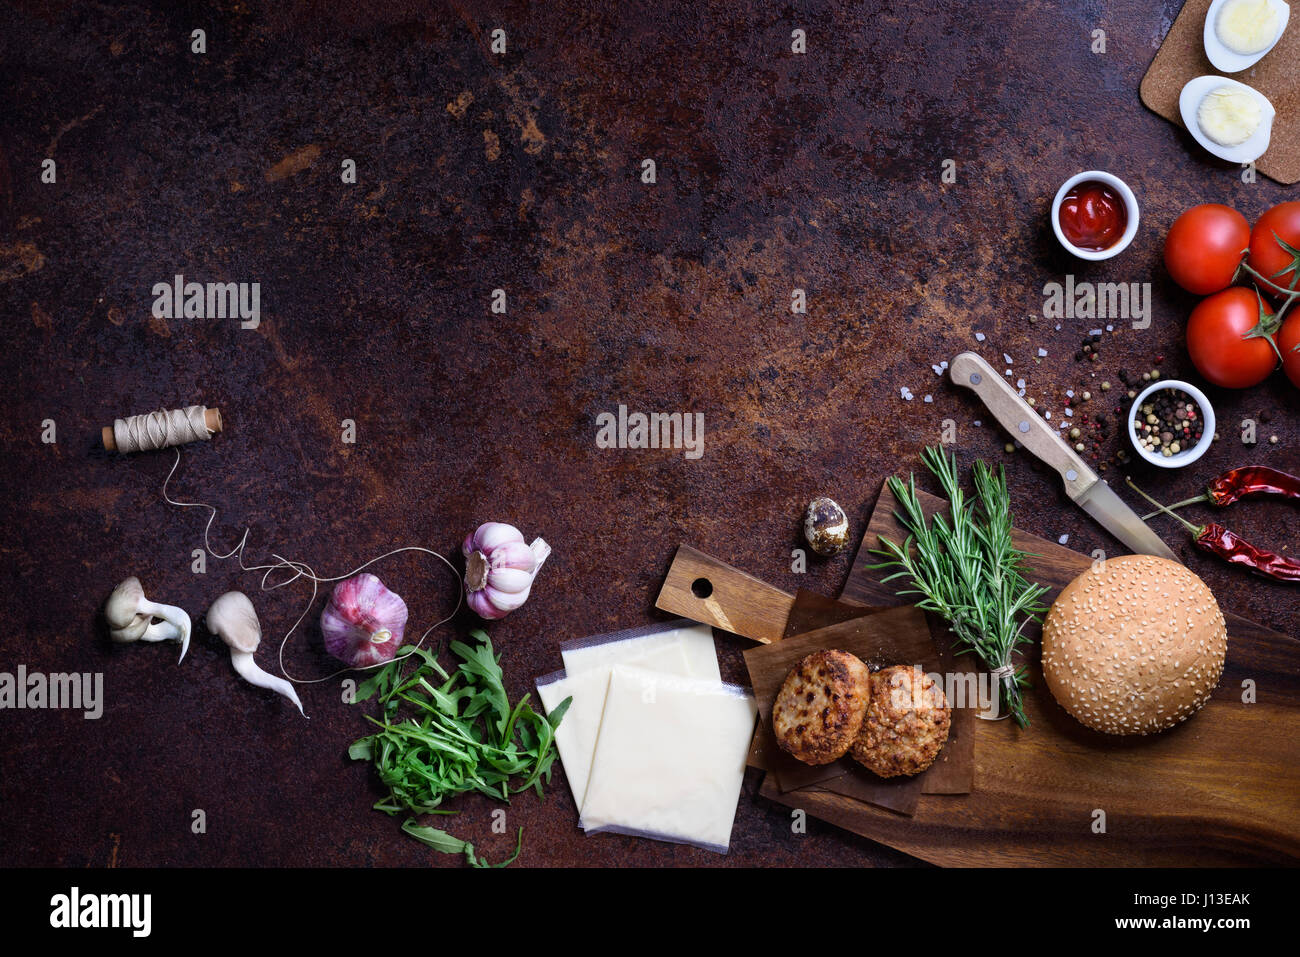 Burger with ingredients, restaurant menu background. Copy space, top view. Beef. Stock Photo